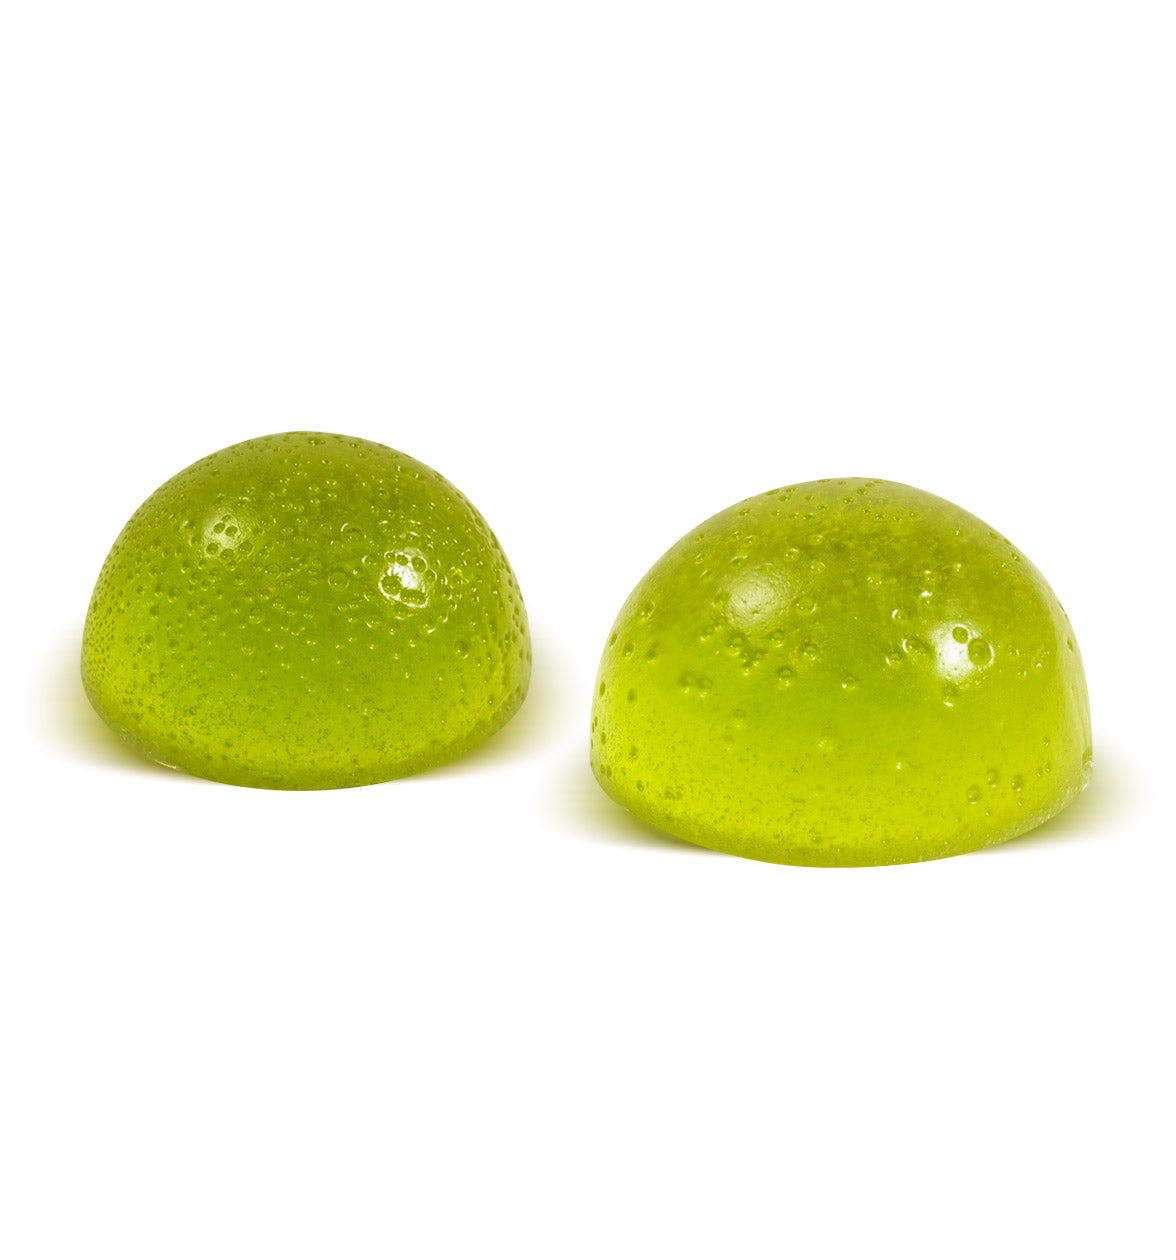 Kiwi Strawberry 1:1 Gummies